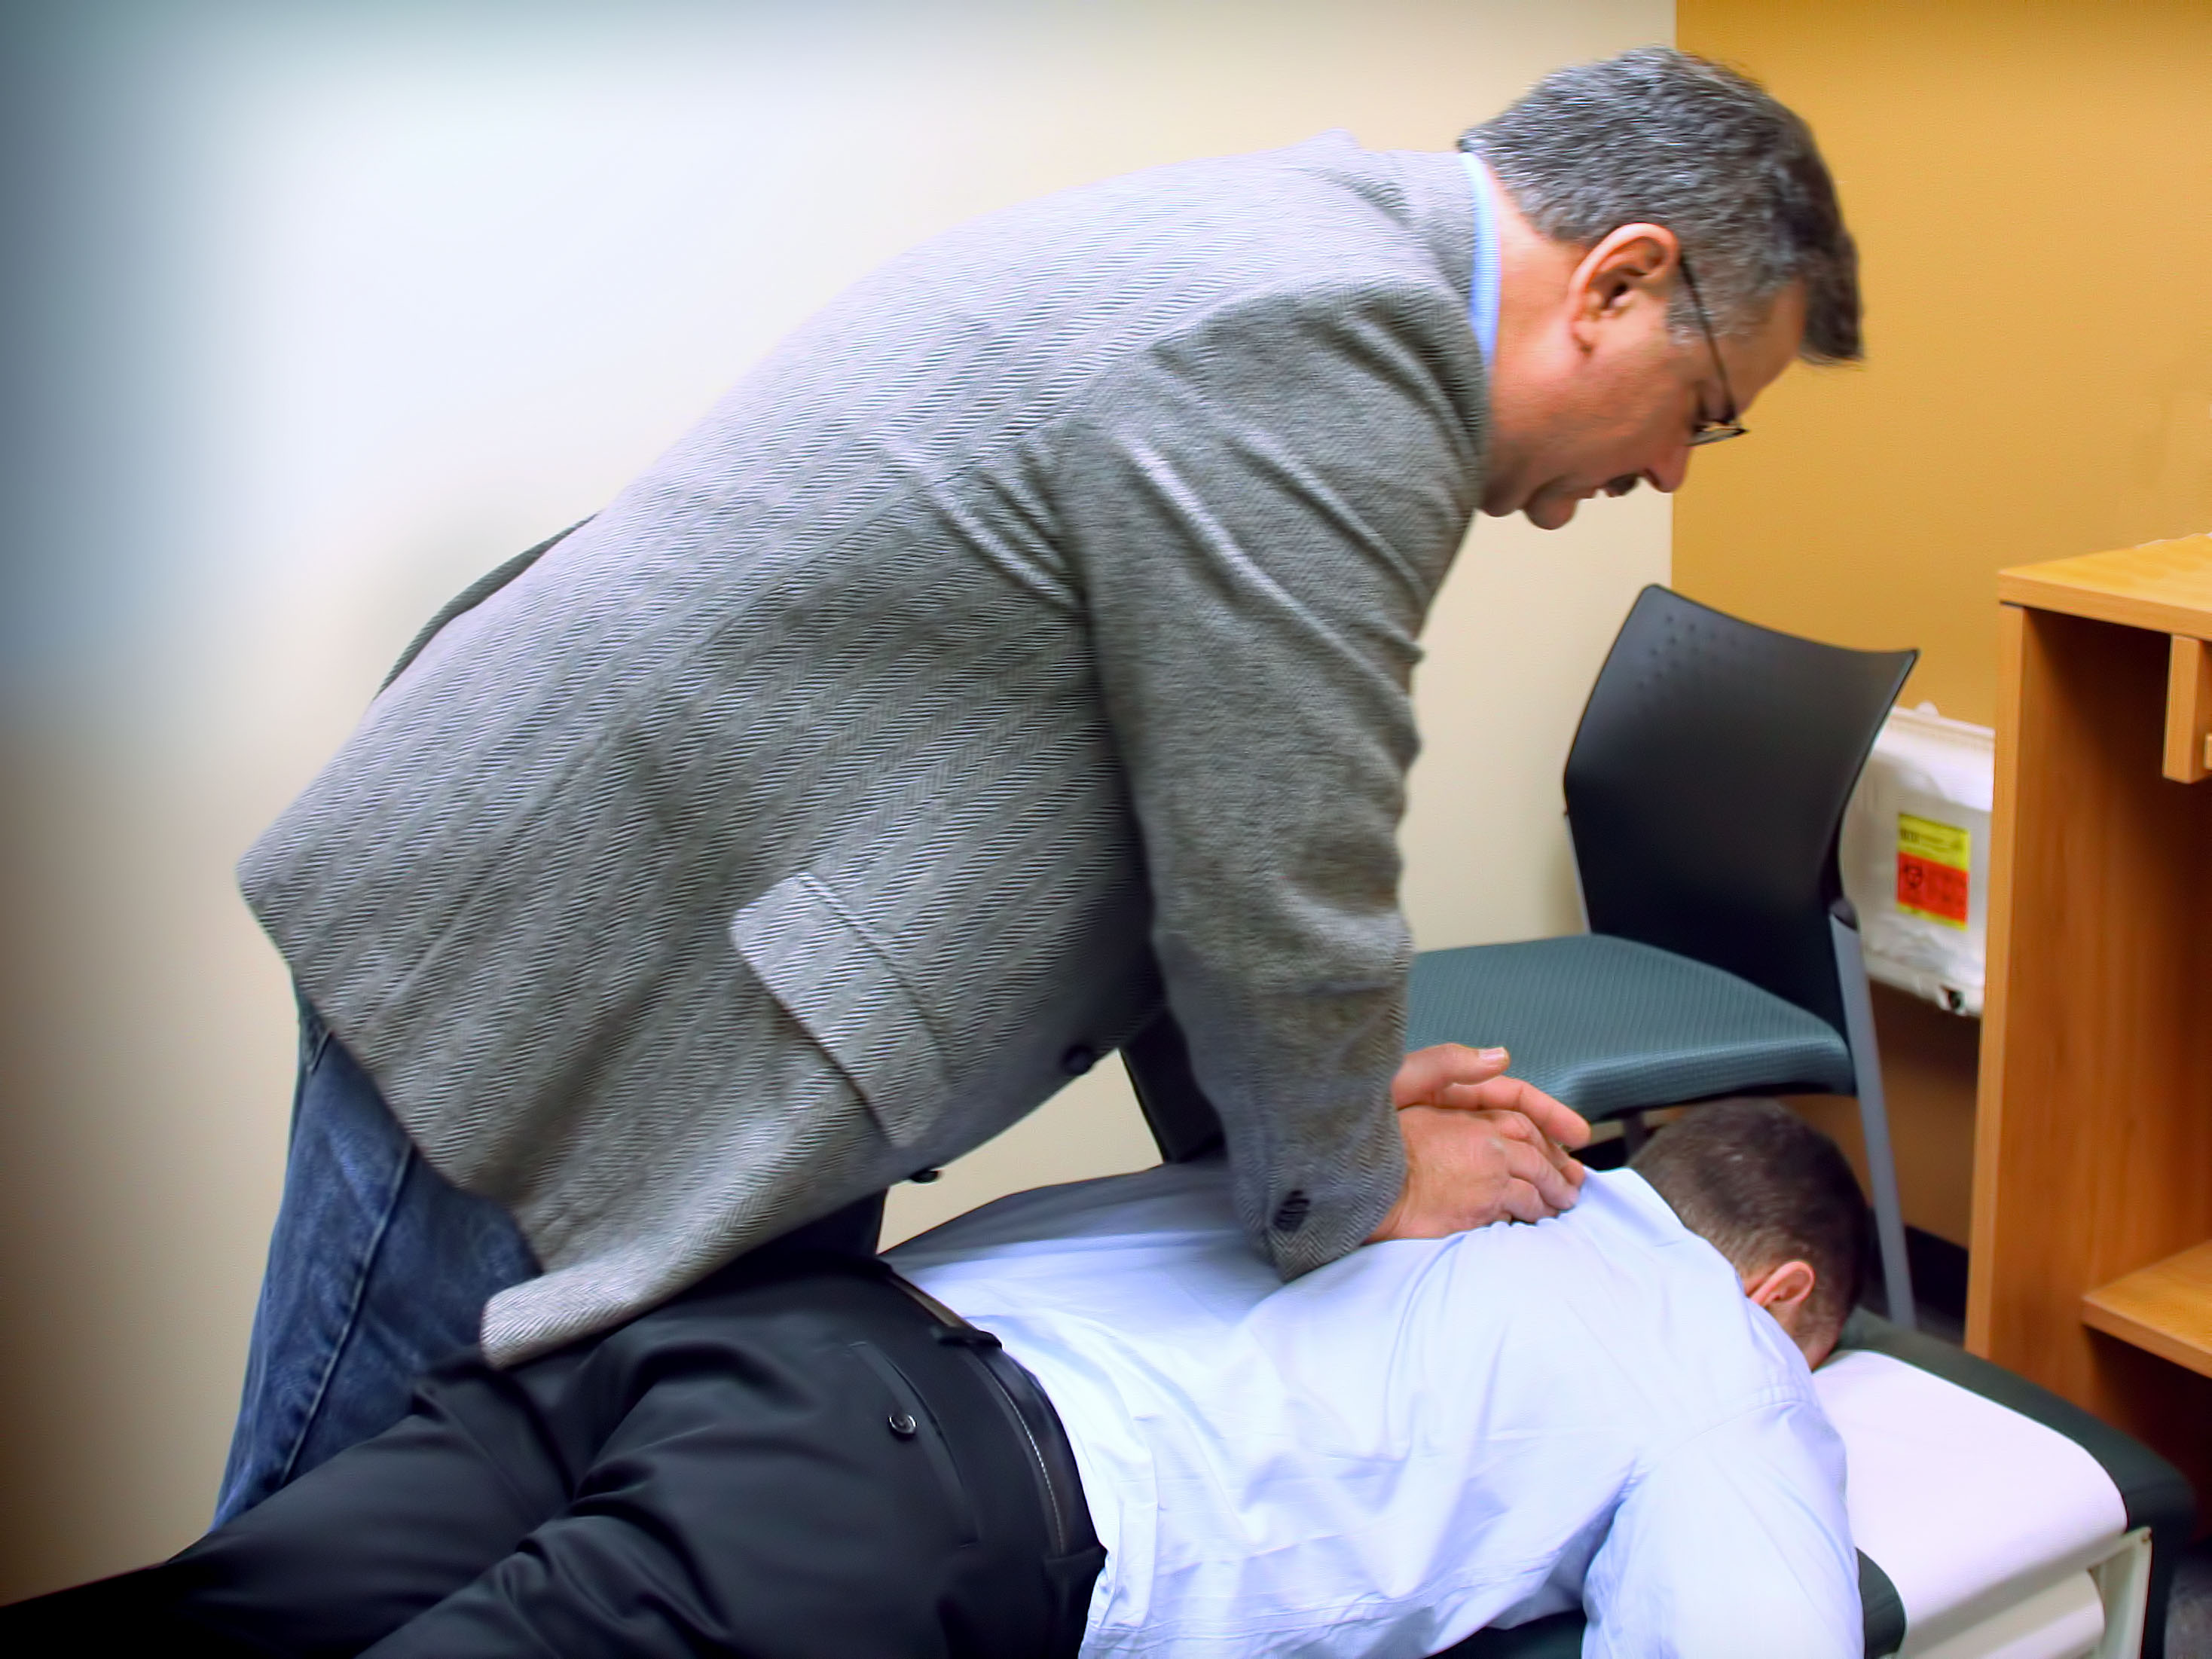 chiropractor and man